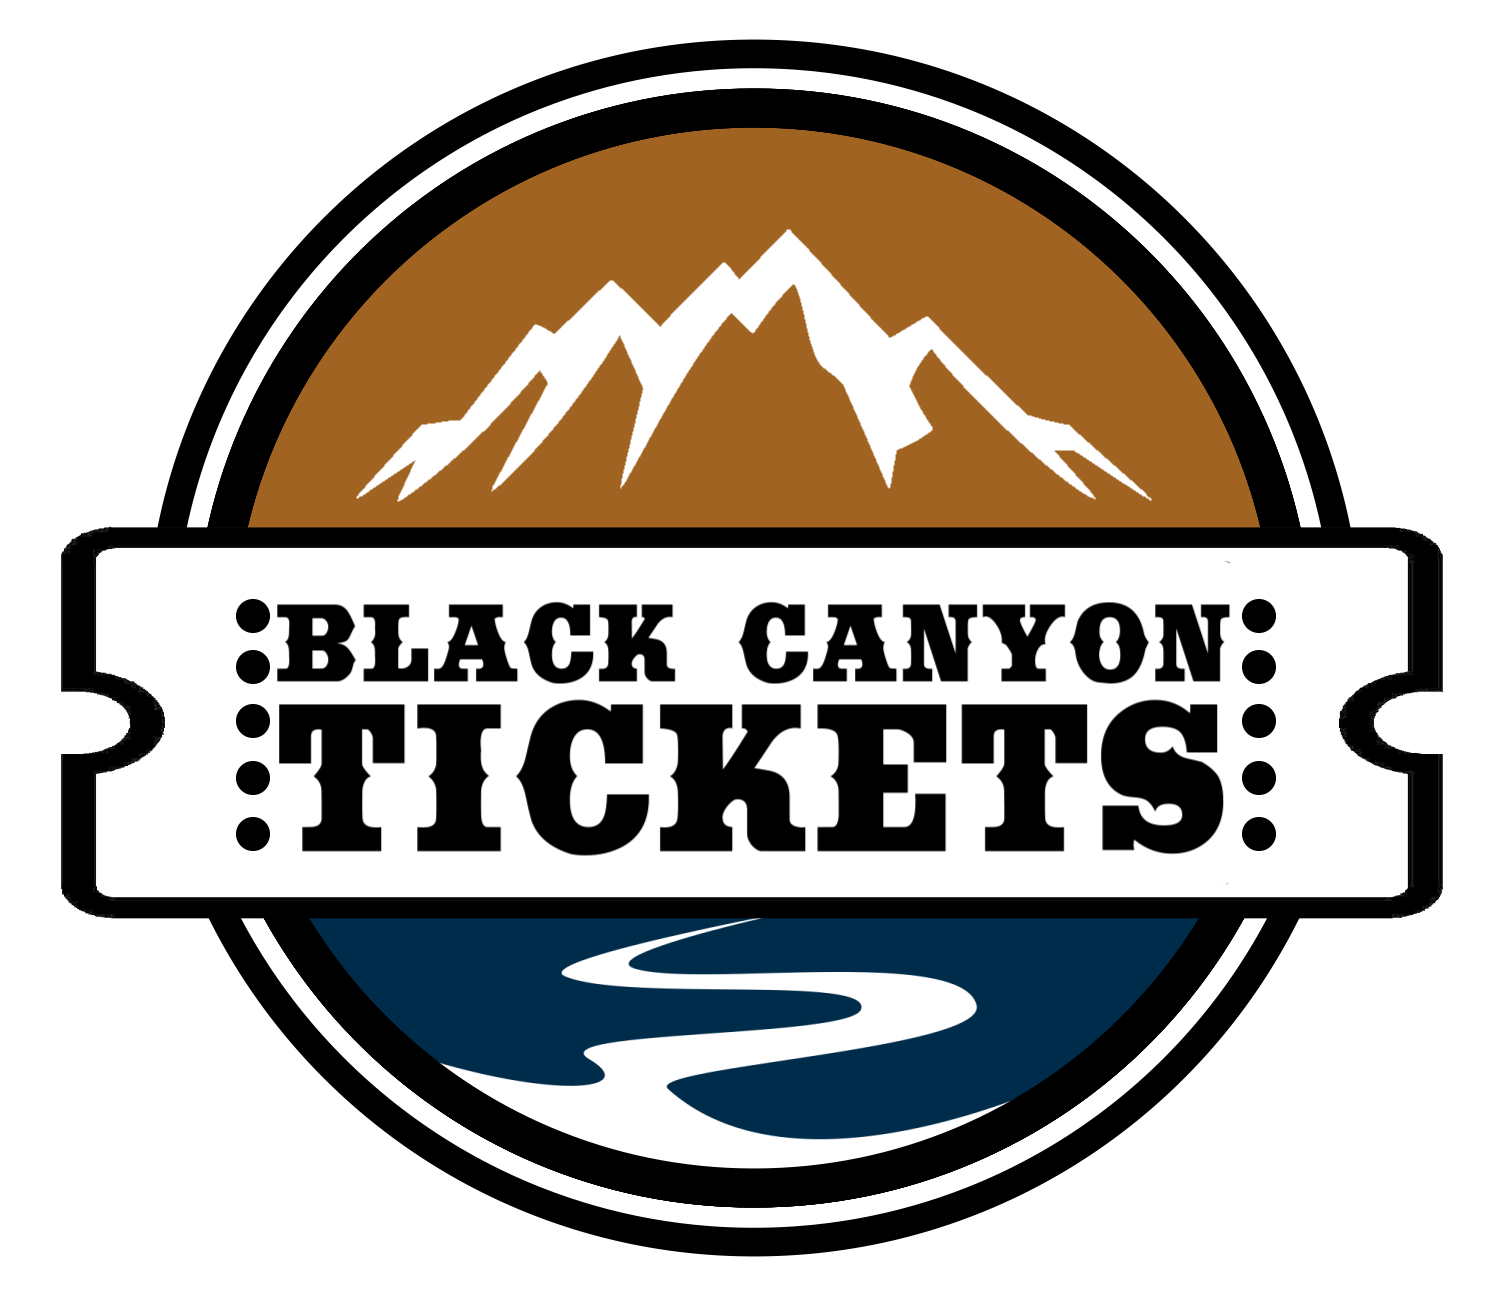 Movie Marathon - Black Canyon Tickets